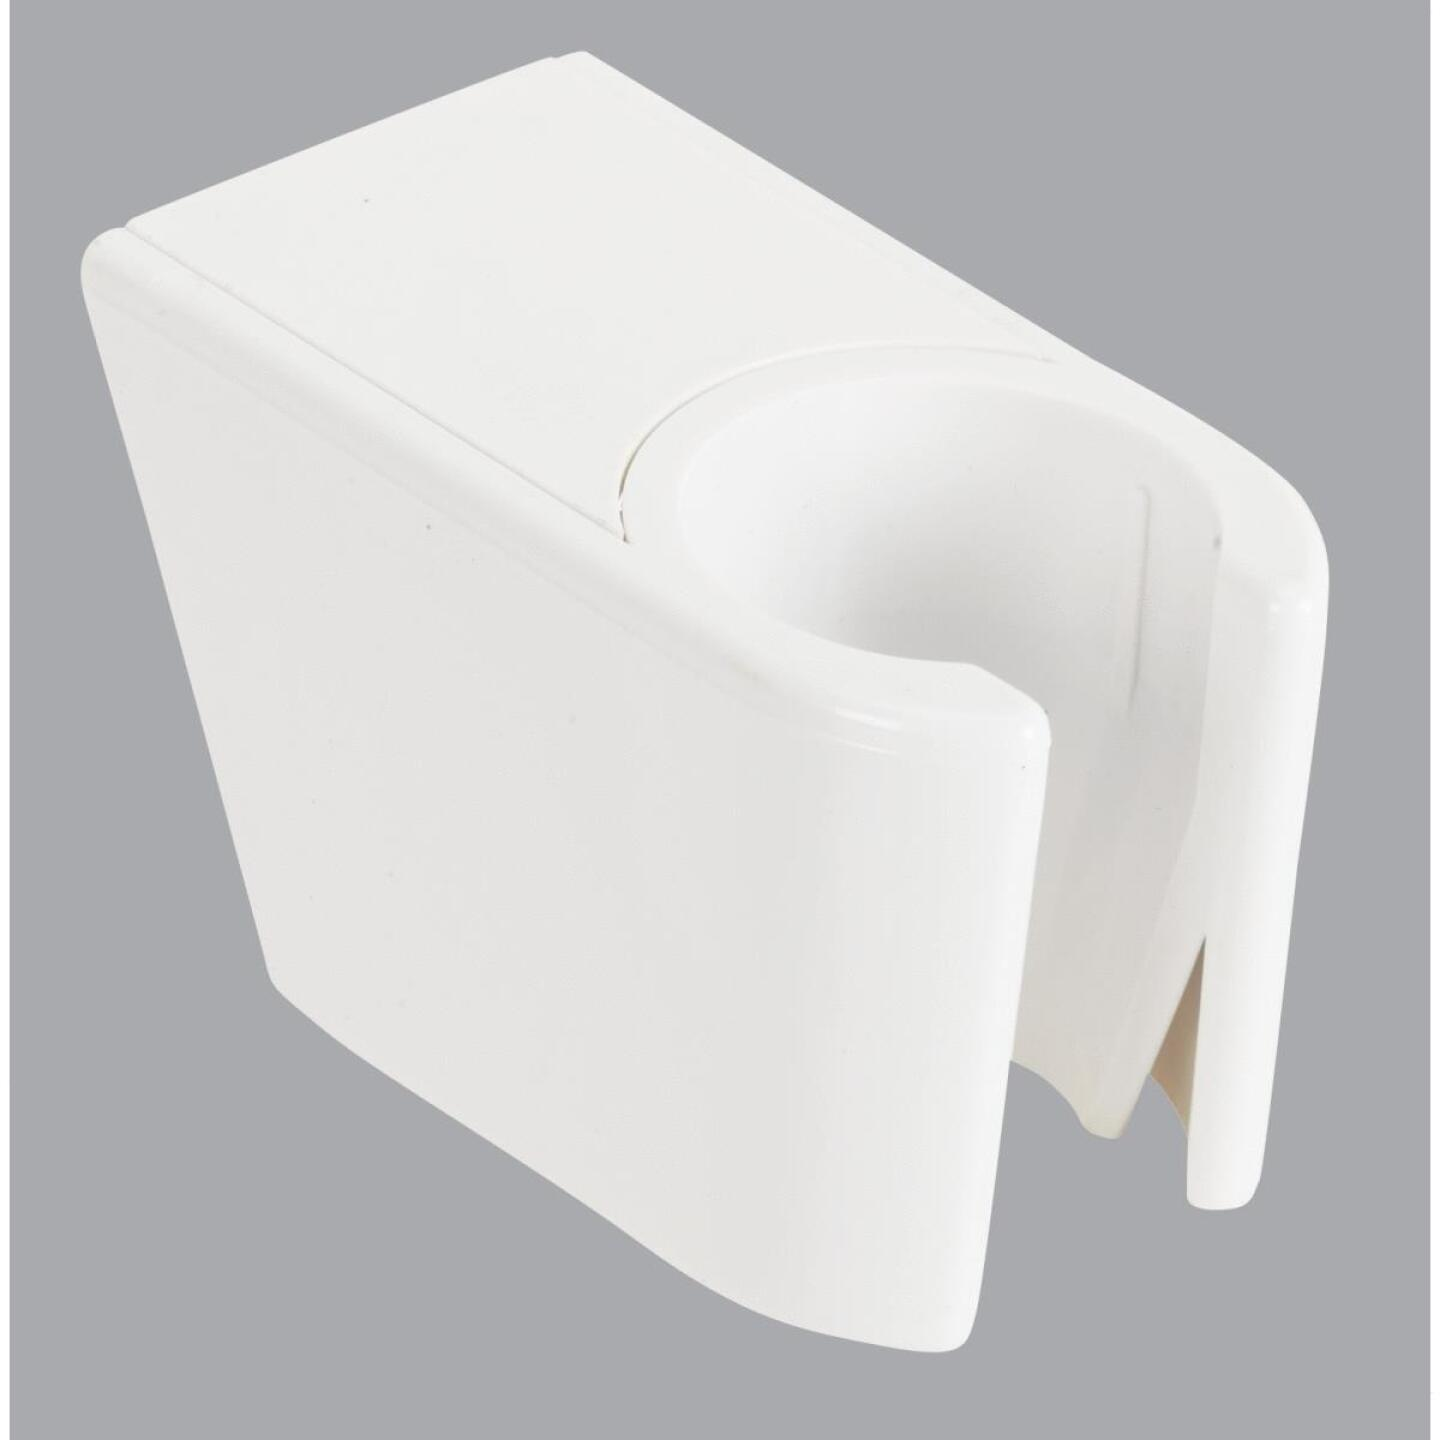 Do it White Plastic Shower Wall Mount Image 1